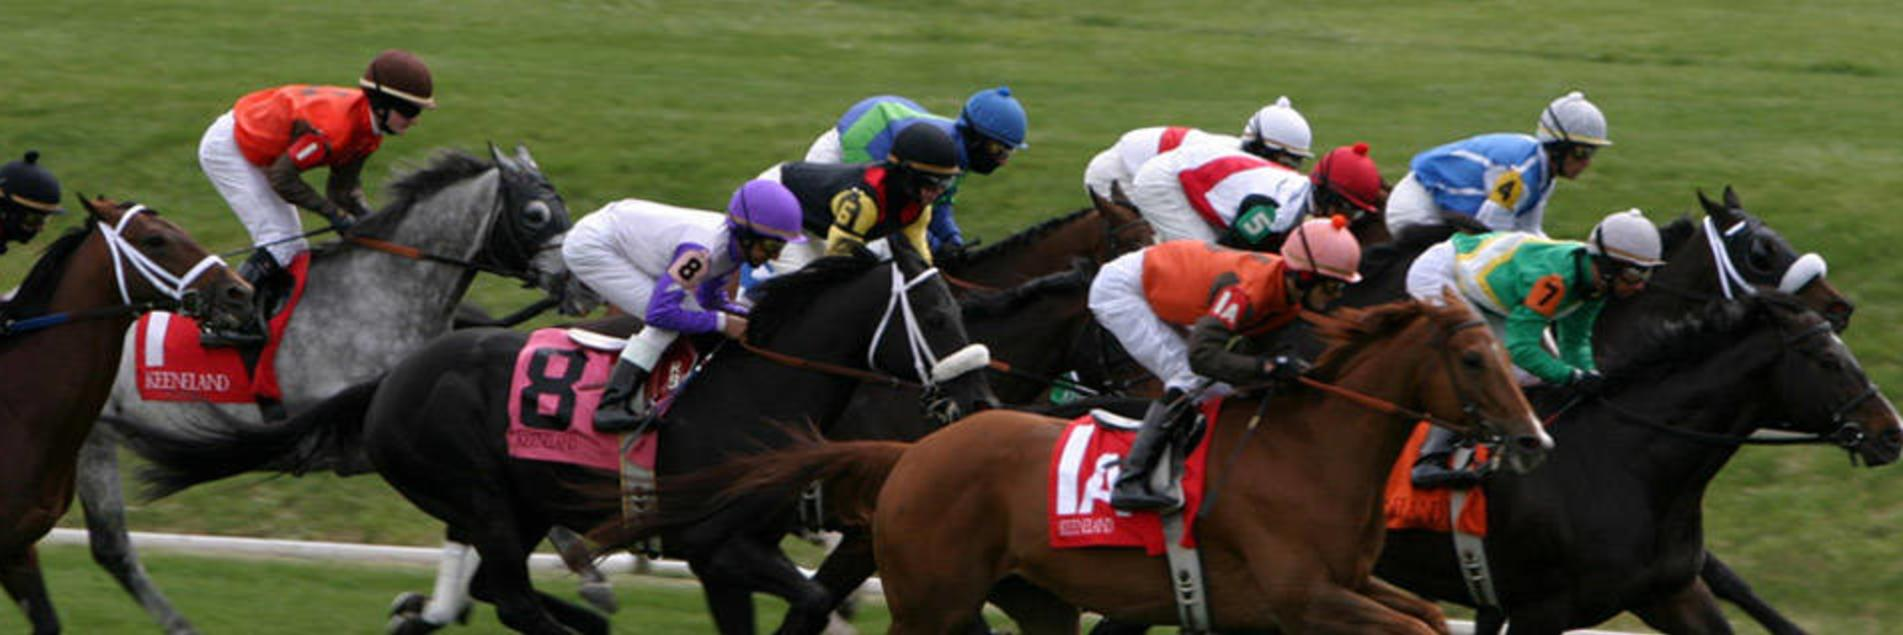 Racing at Keeneland